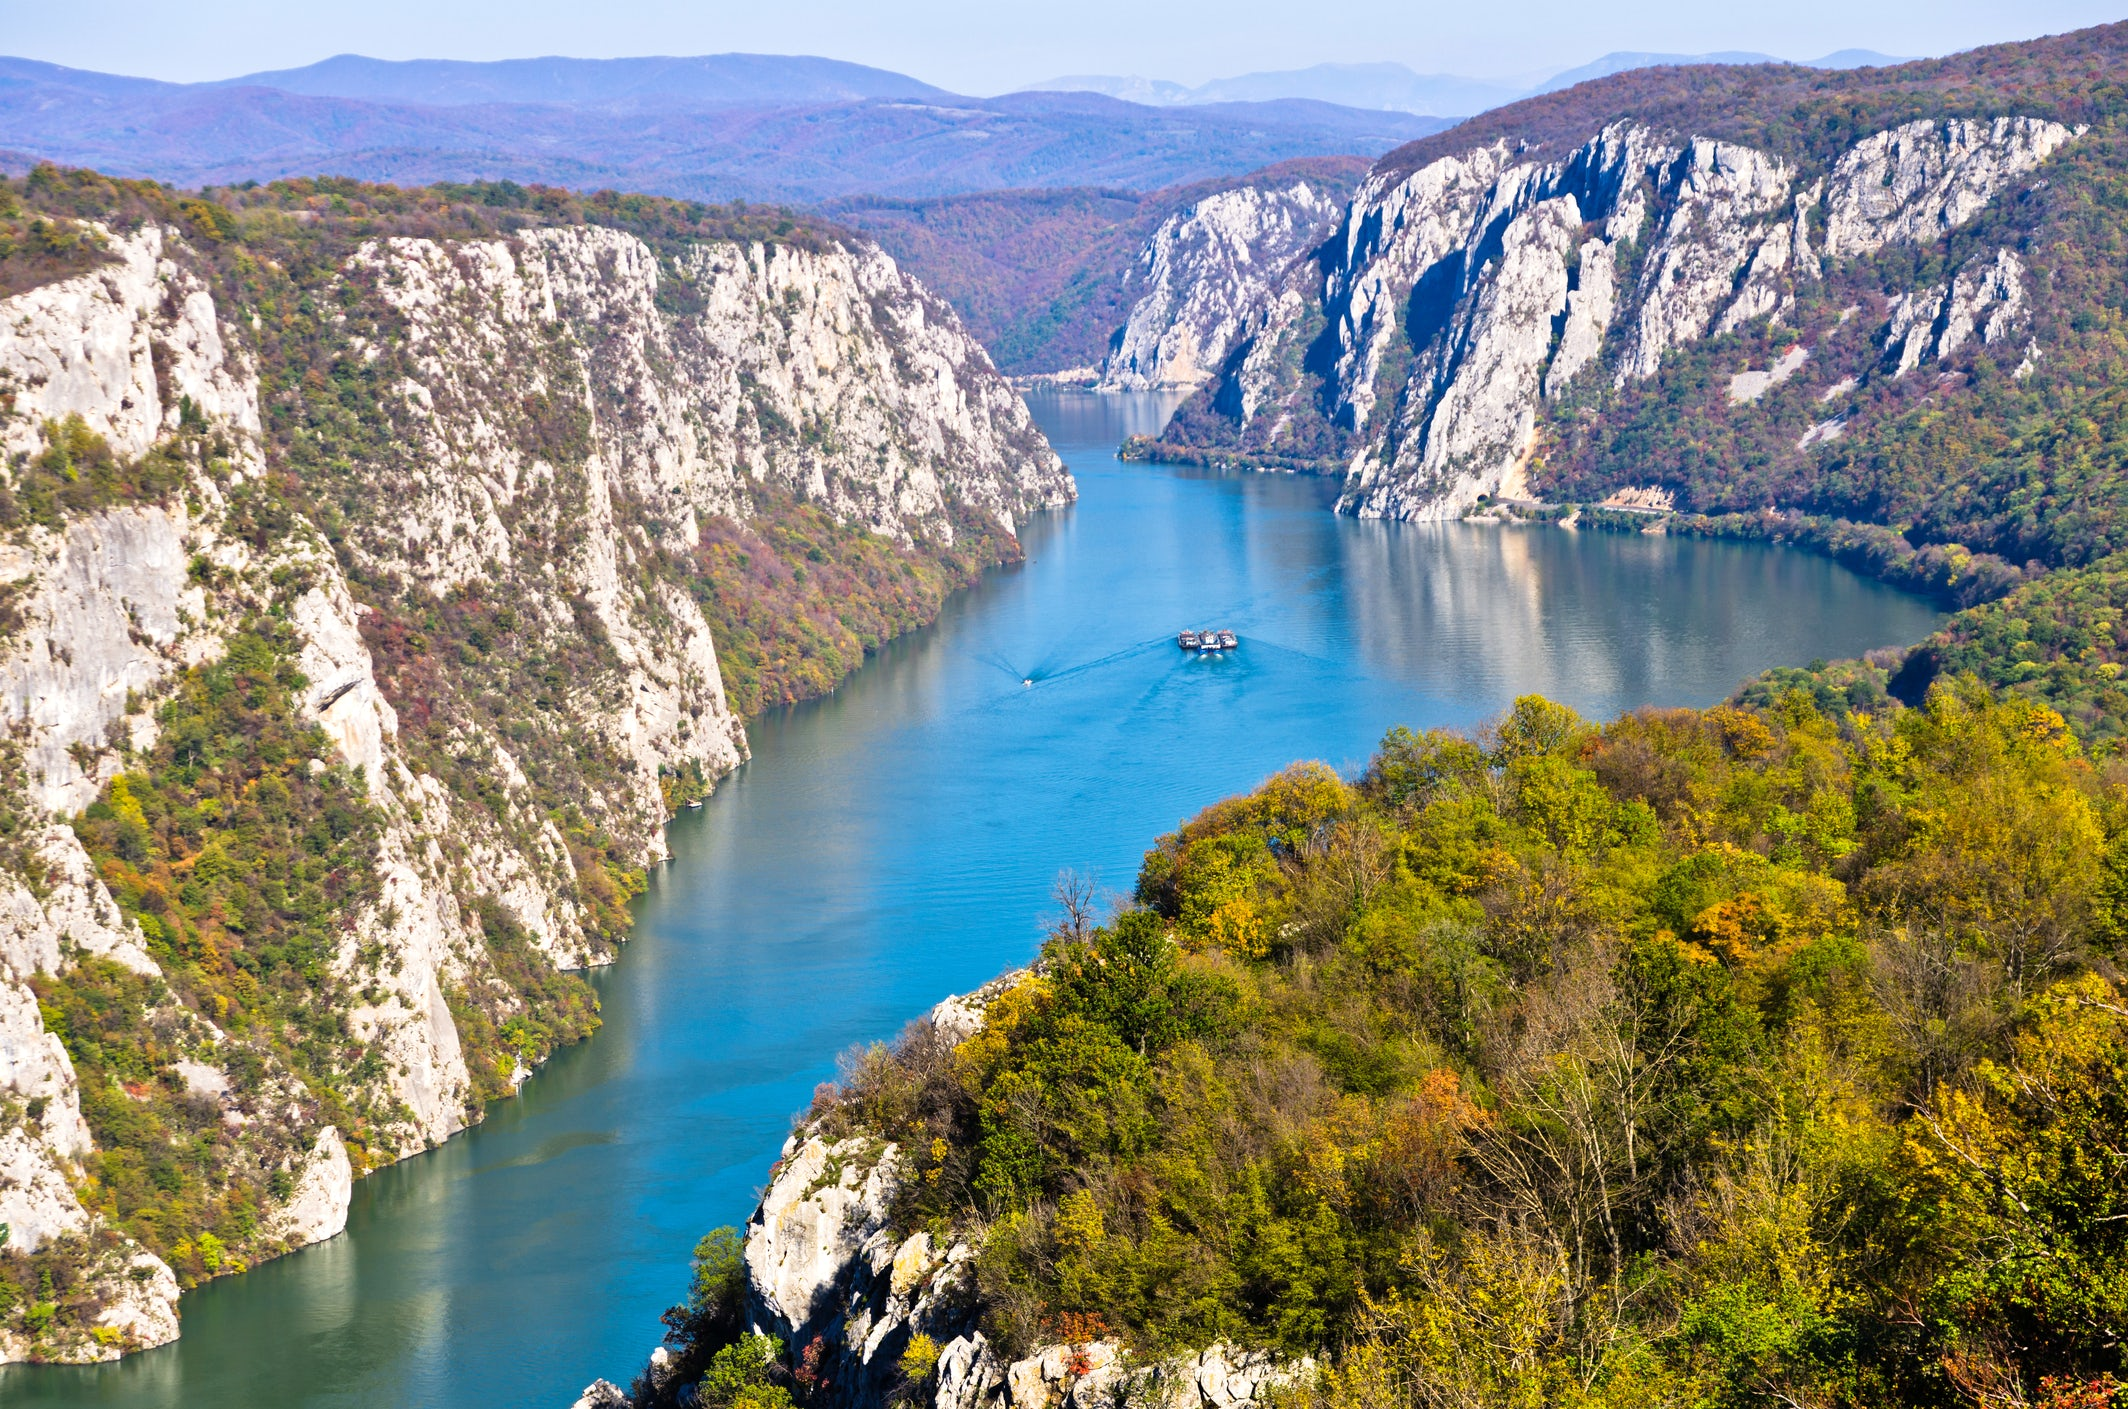 The Best of Danube: National Park Djerdap